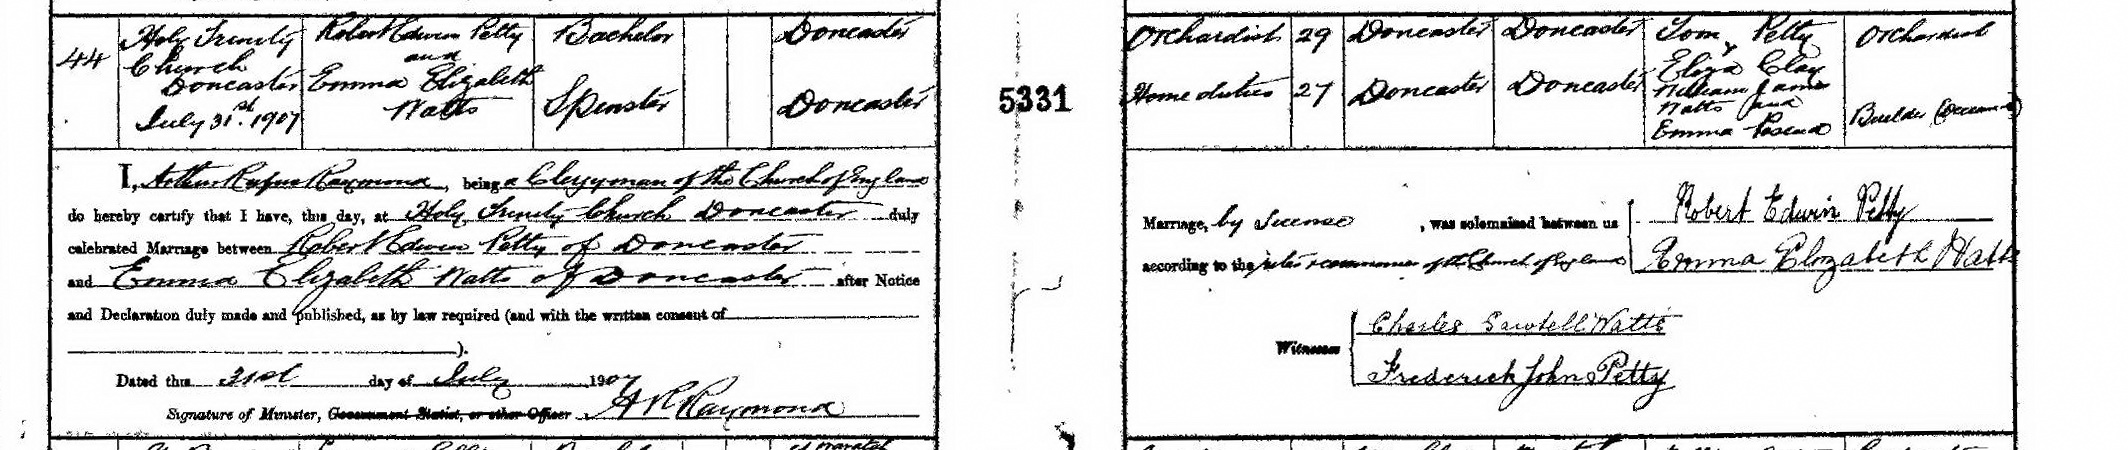 Robert Edwin Petty and Emma Elizabeth Watts marriage certificate